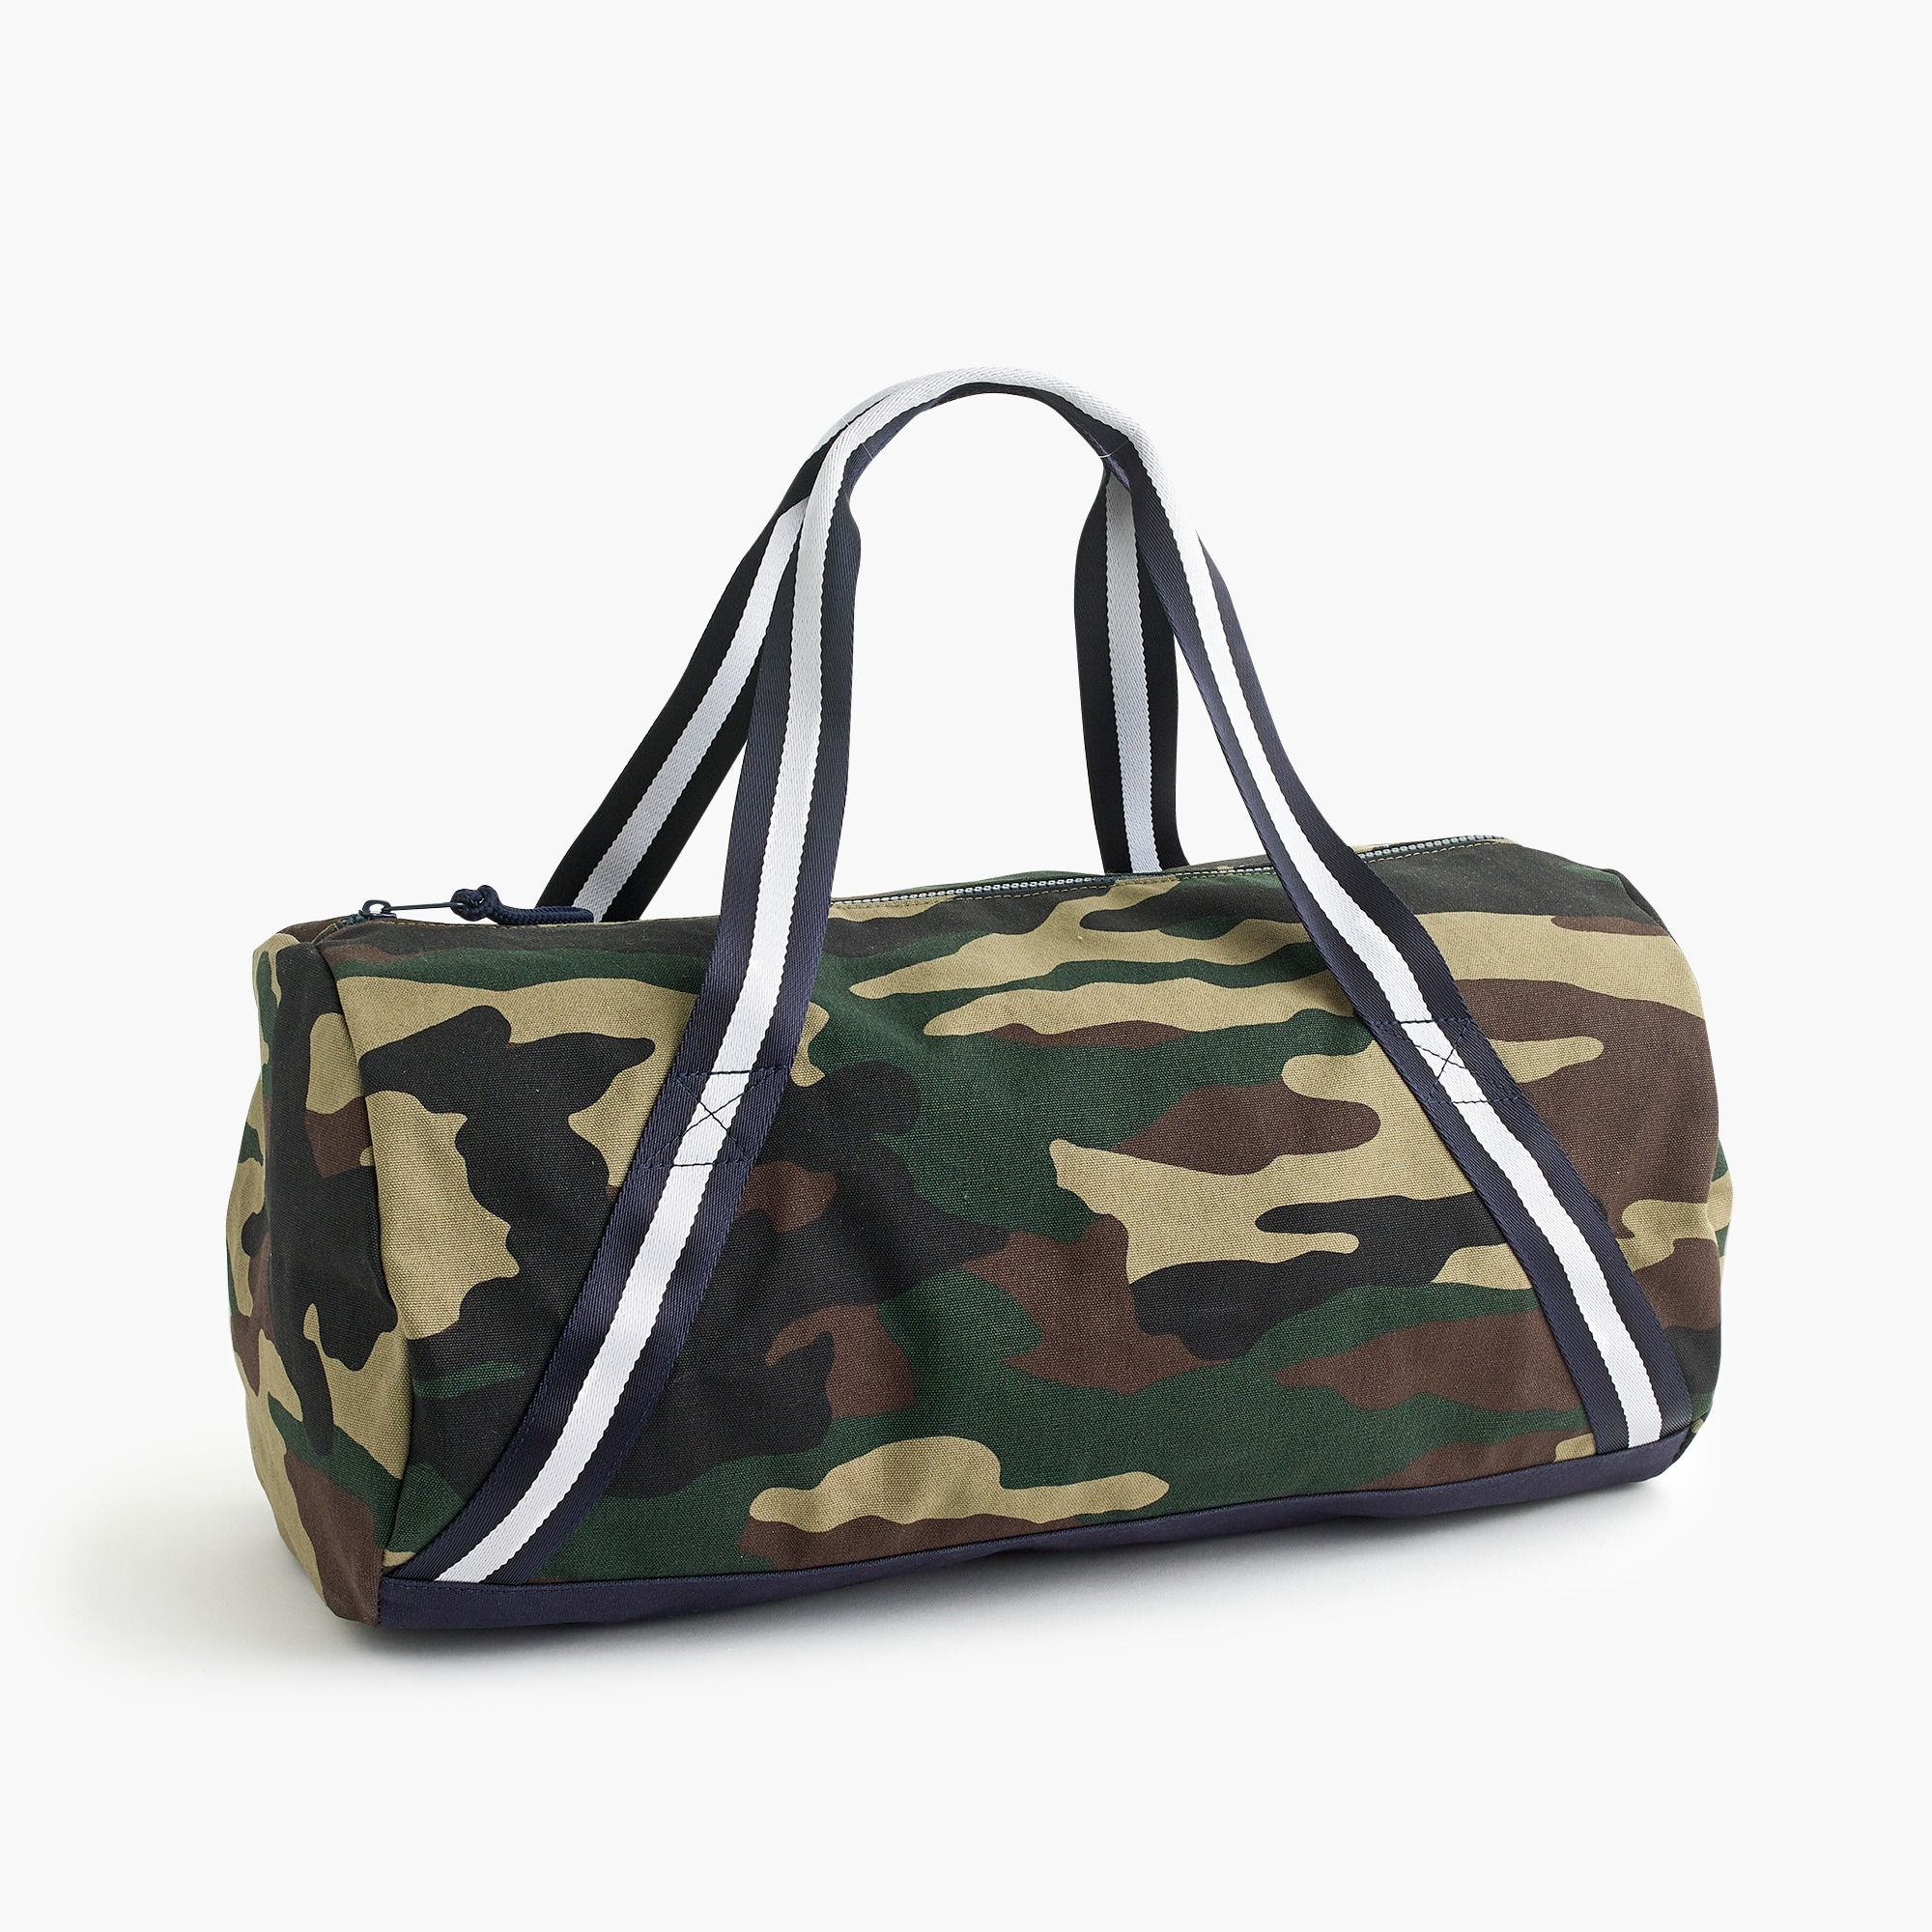 Image 3 for Kids' overnight bag in camo